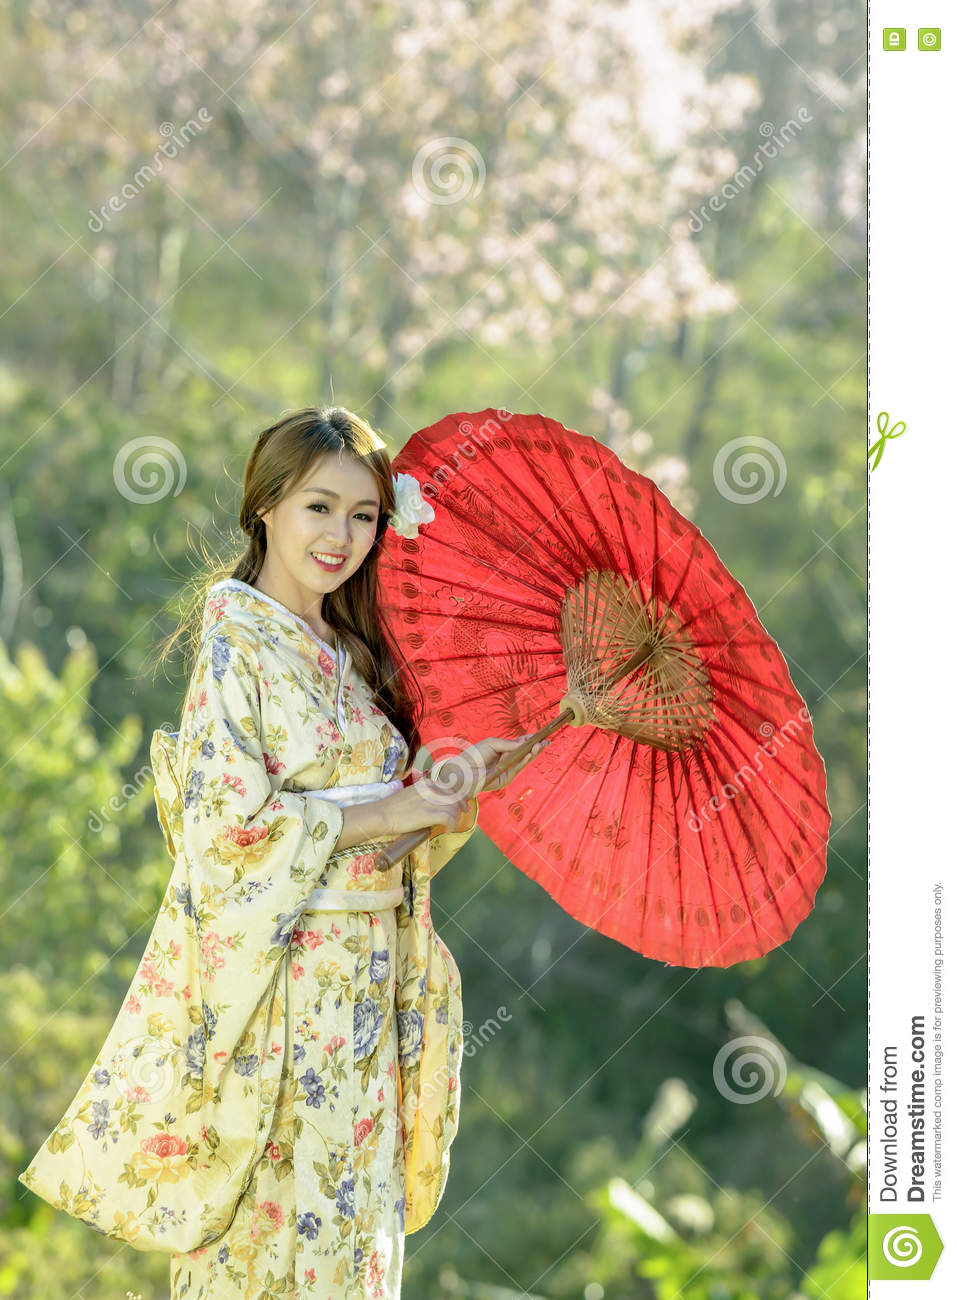 femmes asiatiques utilisant le kimono japonais traditionnel et le parapluie rouge photo stock. Black Bedroom Furniture Sets. Home Design Ideas